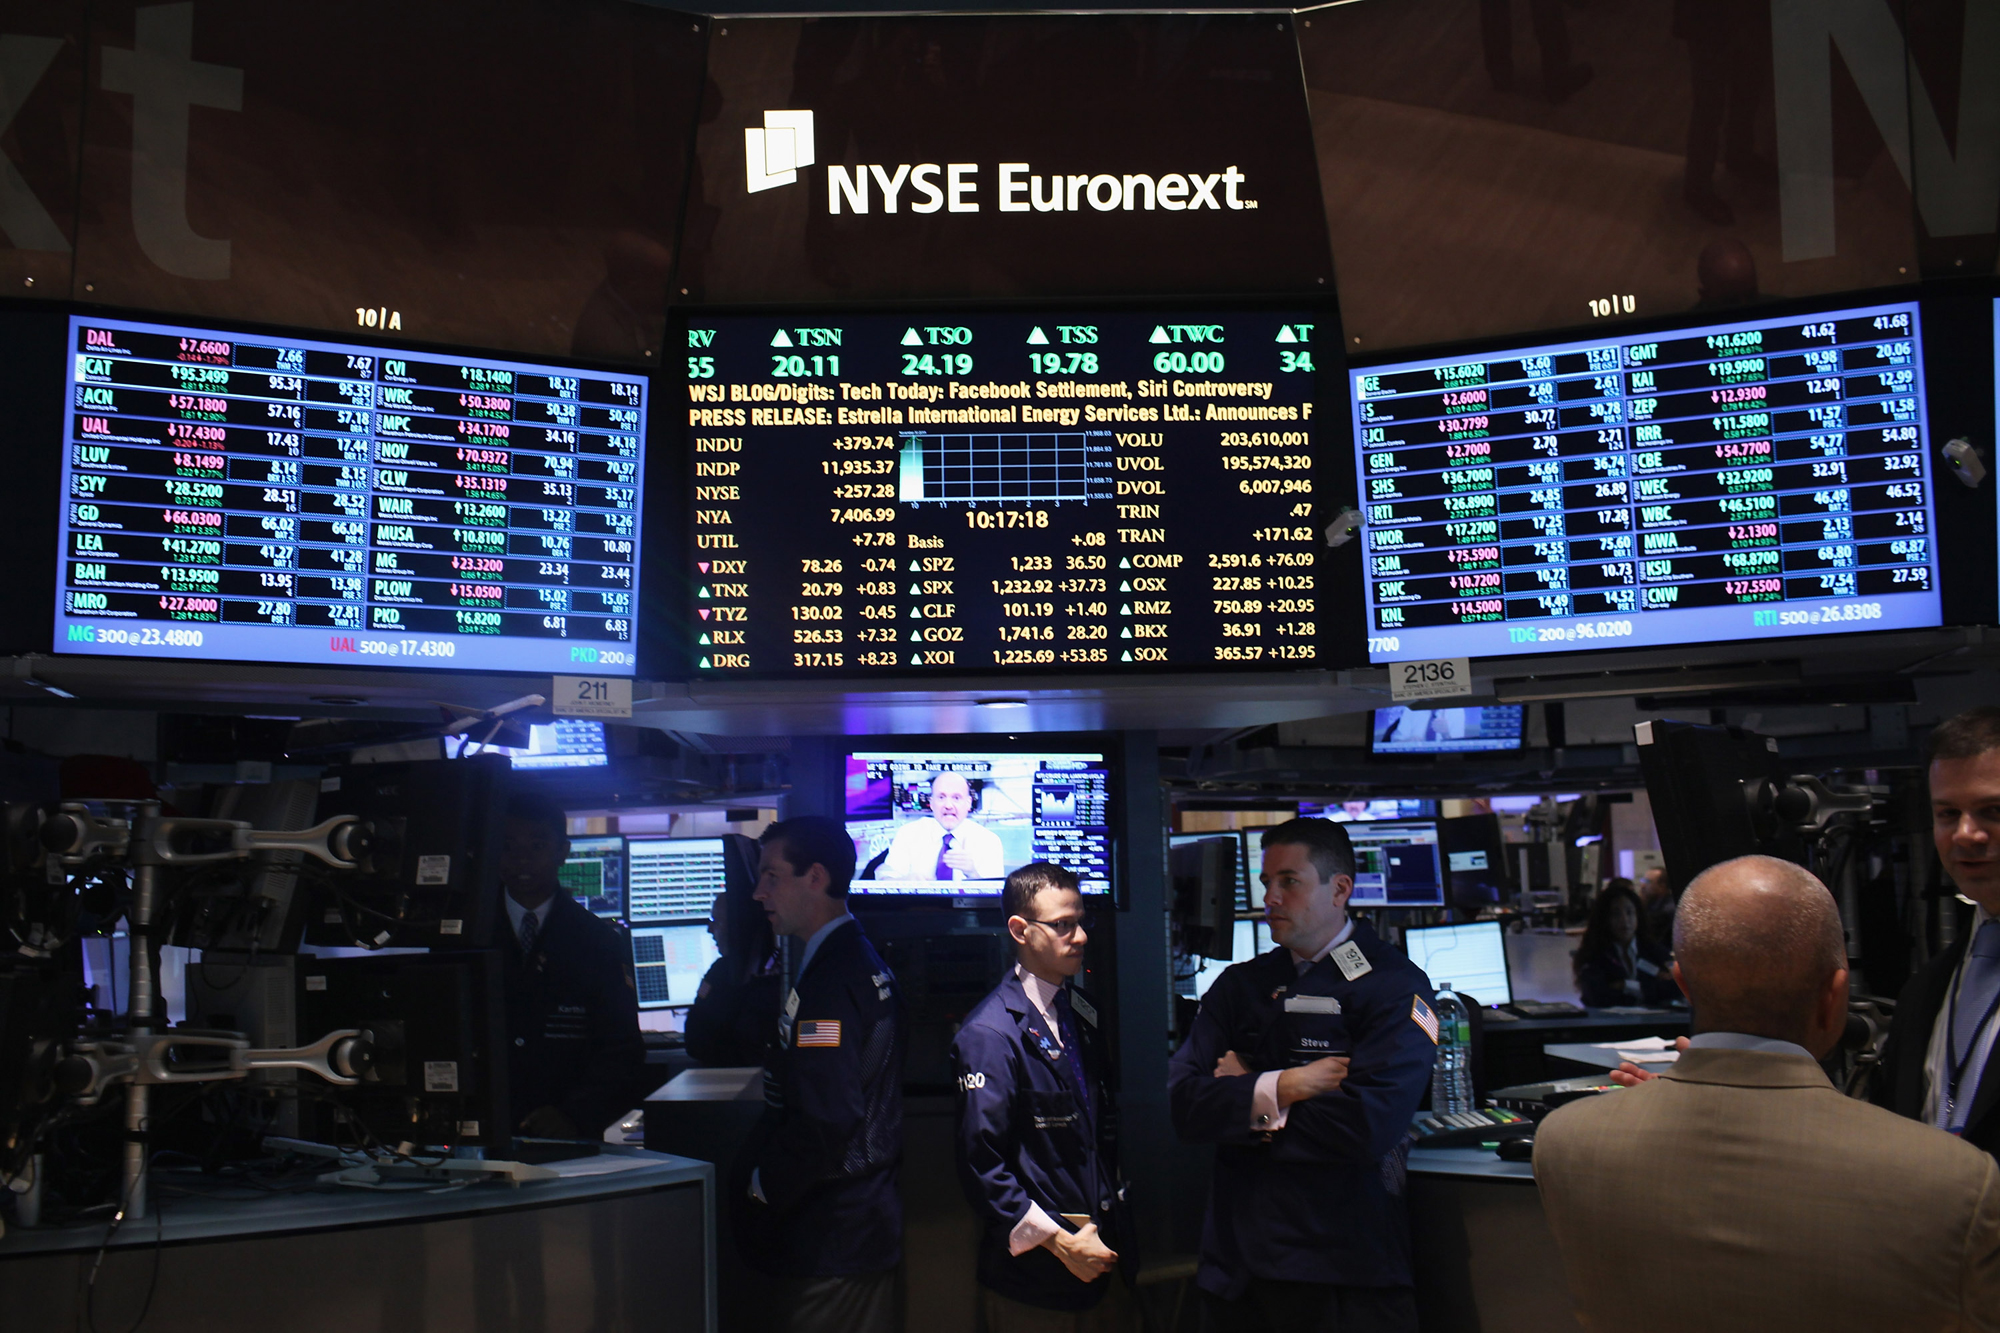 Des traders à la bourse de New-York.